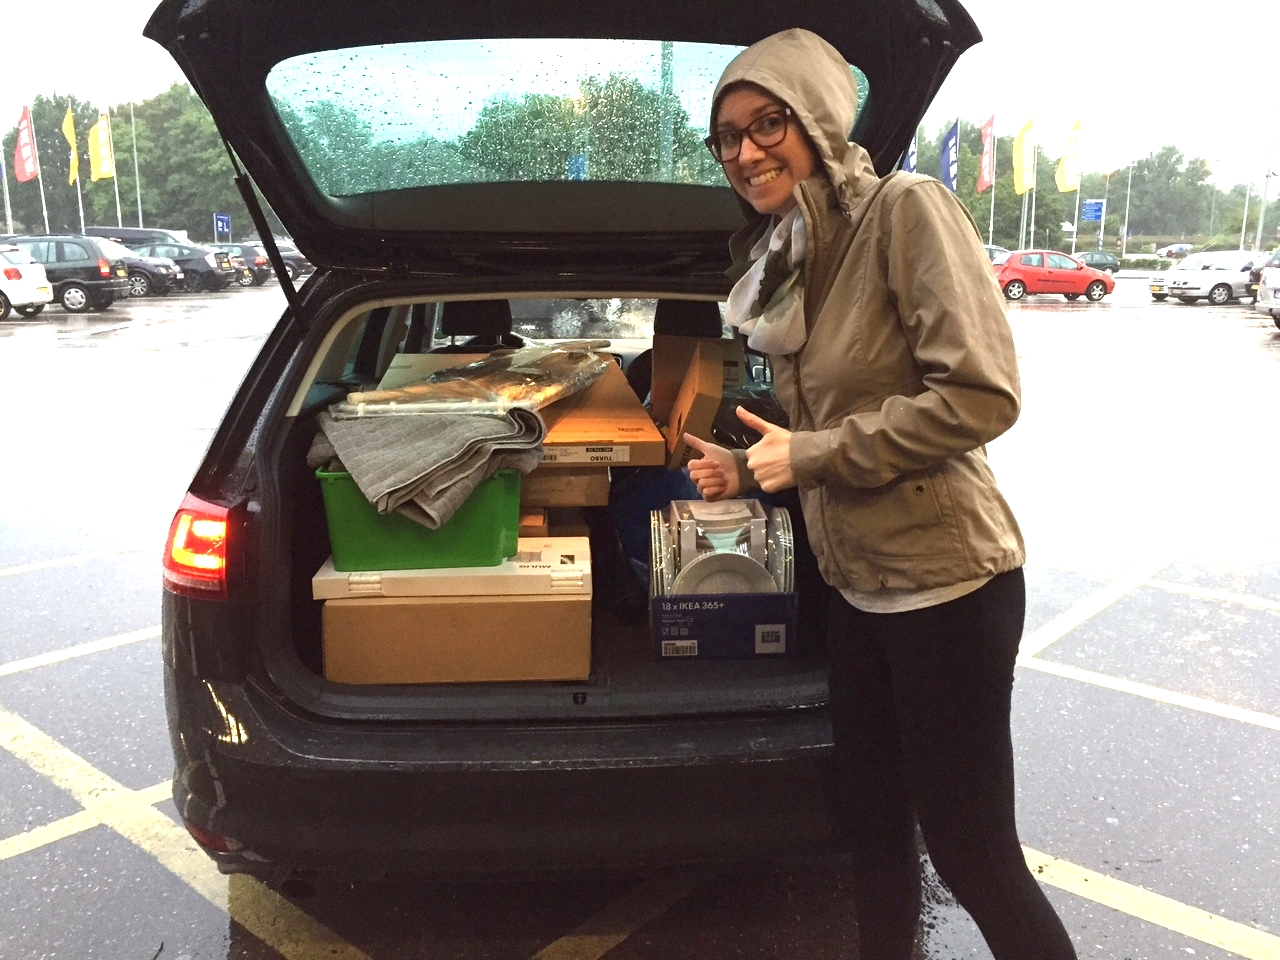 The first (and longest at a whopping4 hours) of the three trips to IKEA. Who knew you could fit so much in the back of a station wagon?